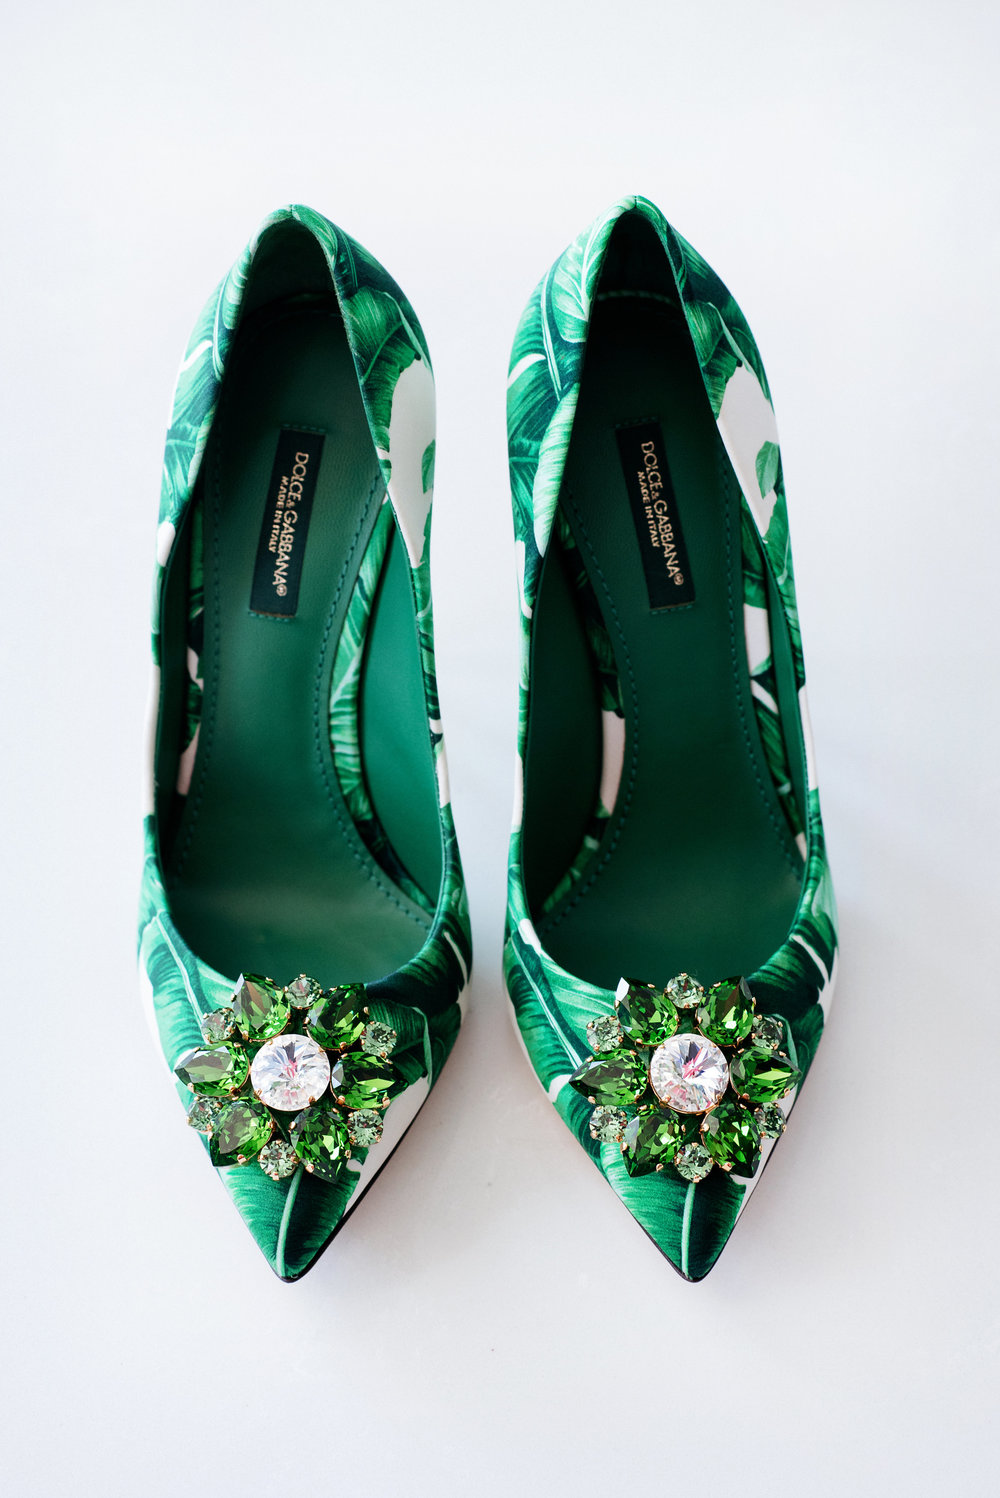 Dolce and Gabbana palm print shoes - Palma Dolce (Wedluxe)